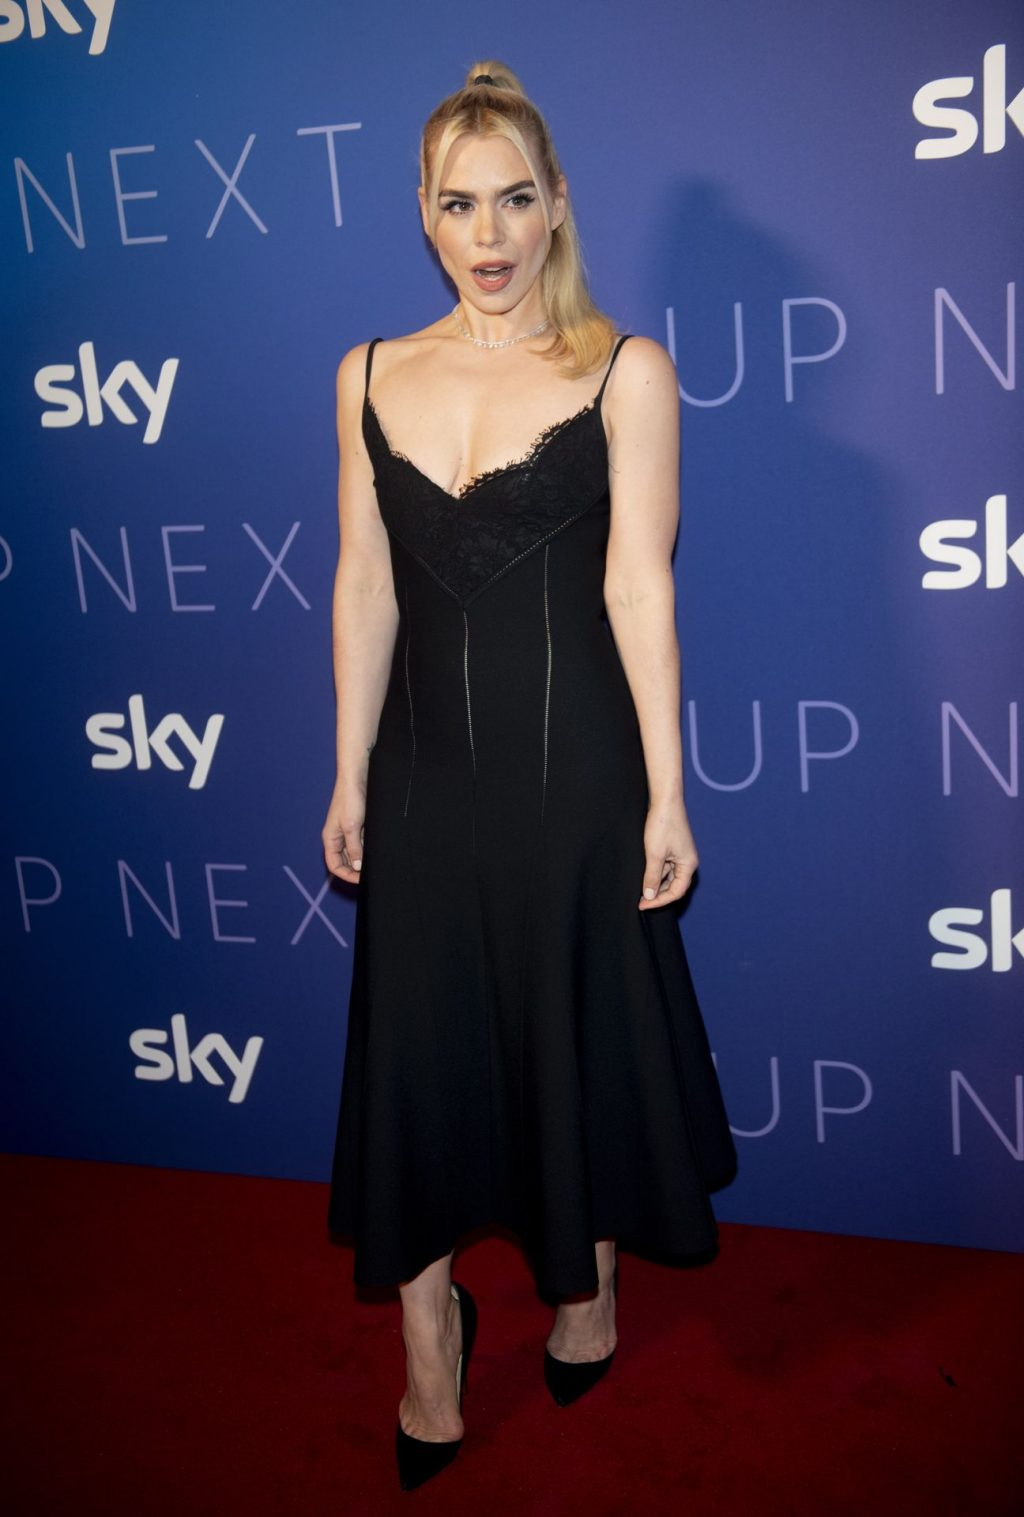 Billie Piper Sexy The Fappening Blog 48 1024x1517 - Billie Piper Smiles at the Sky Up Next Event (67 Photos)